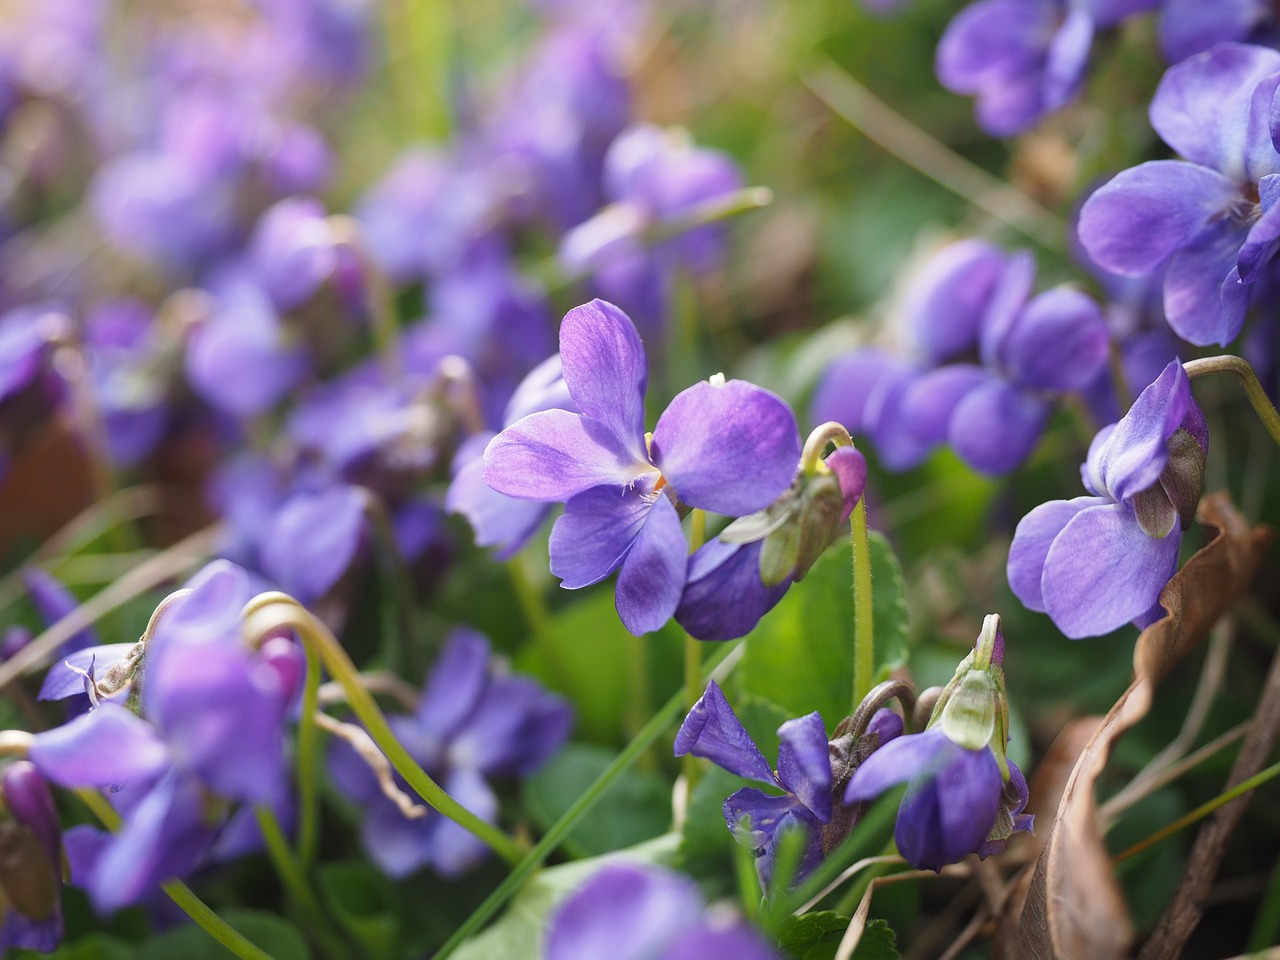 The scent of violet 'makes you want everything' but 'makes you sick of things a minute later. Photo credit: Hans/via Pixabay [Licensed under CC BY CC0]